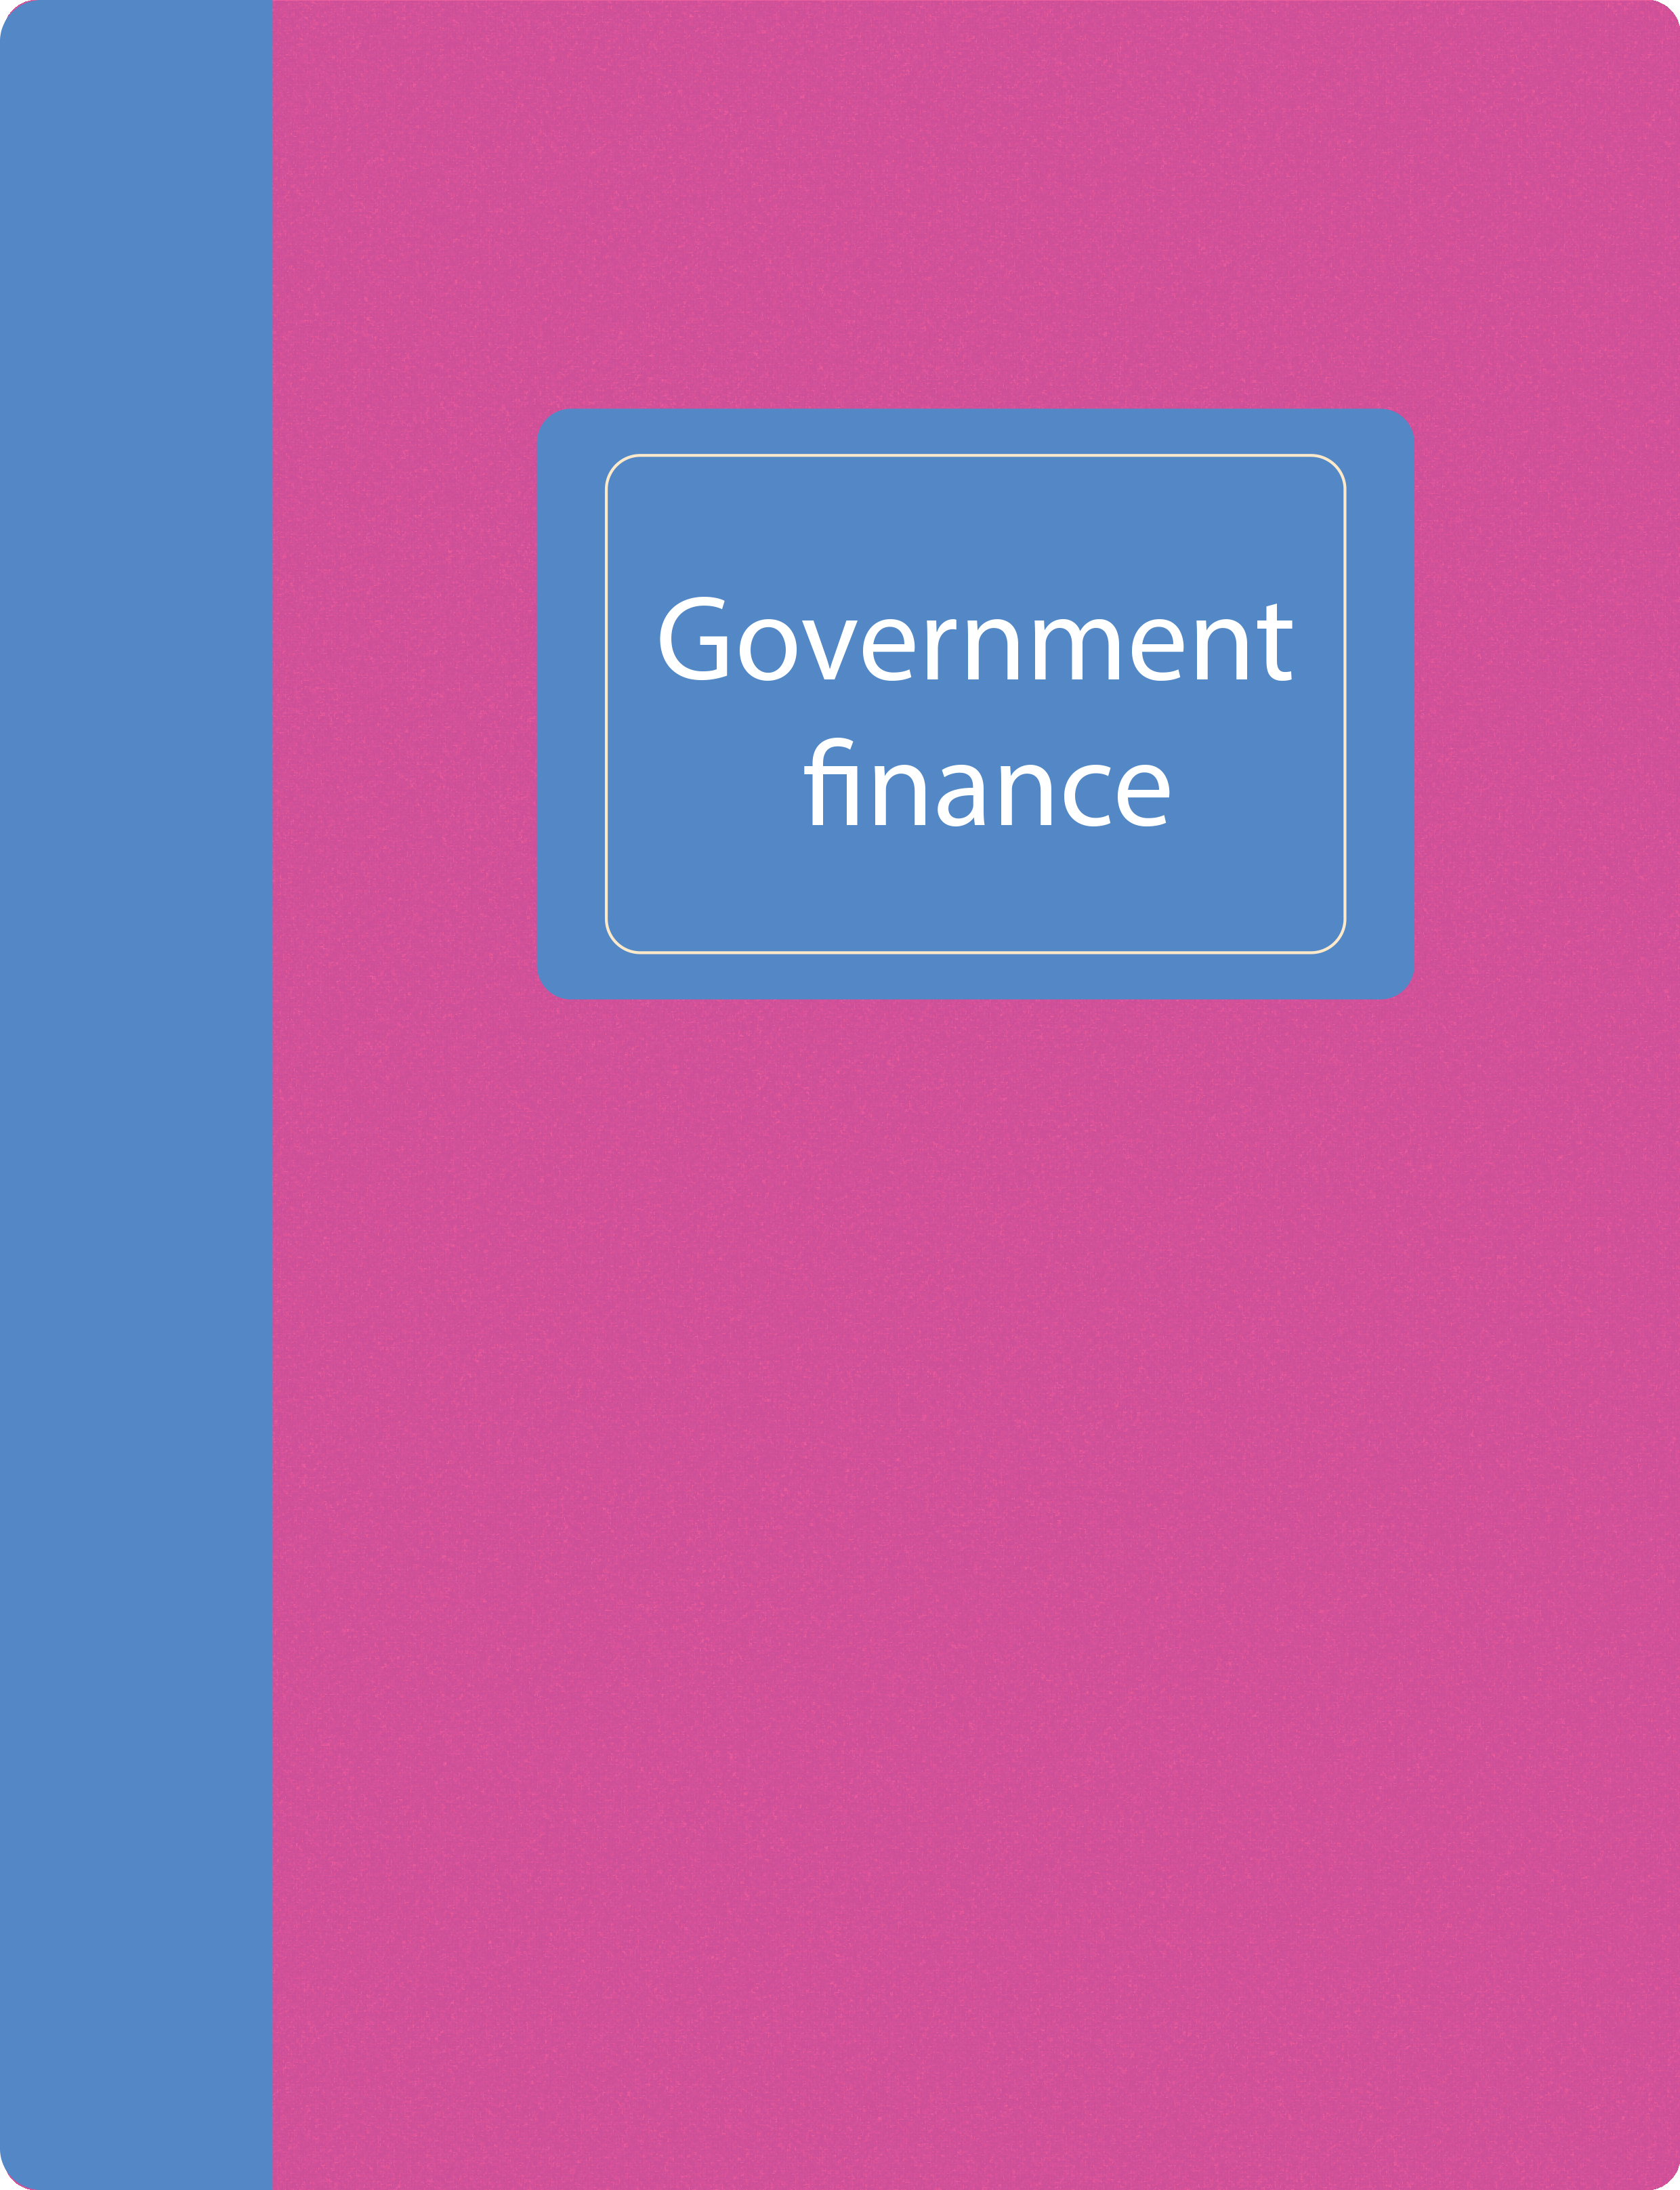 Cahier example theme2 gov.jpg